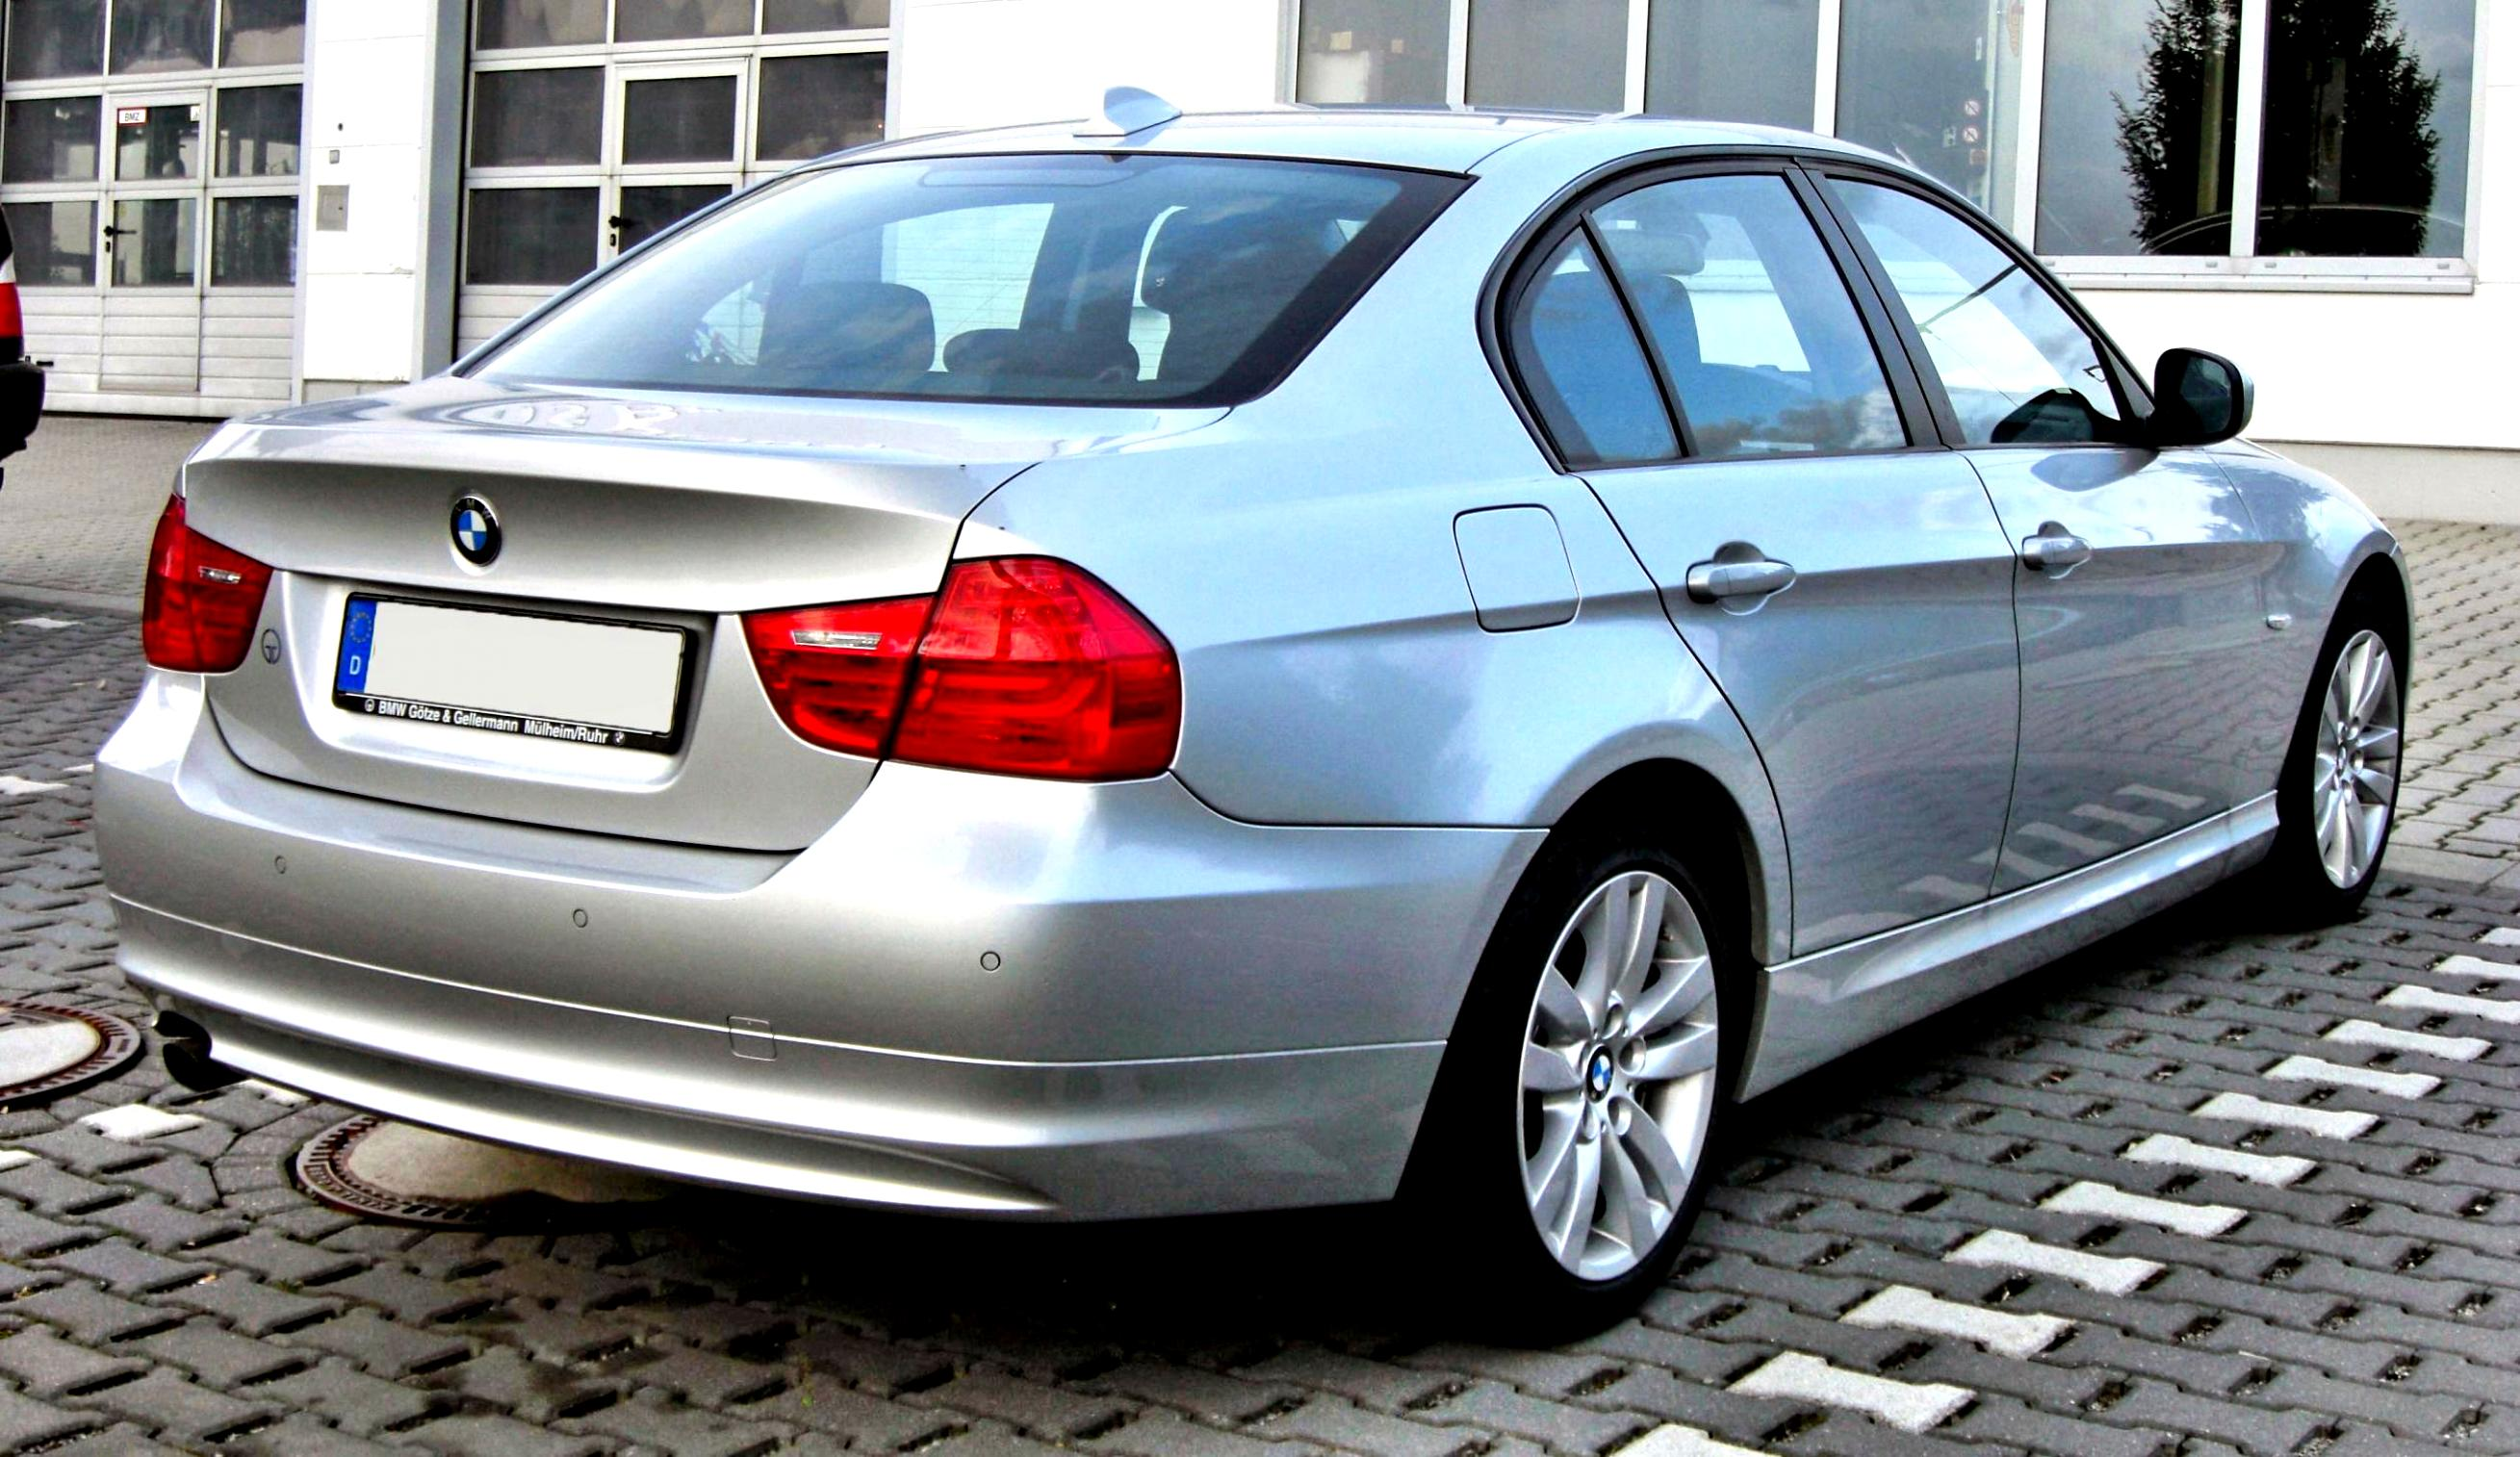 BMW 3 Series E90  WikiVisually